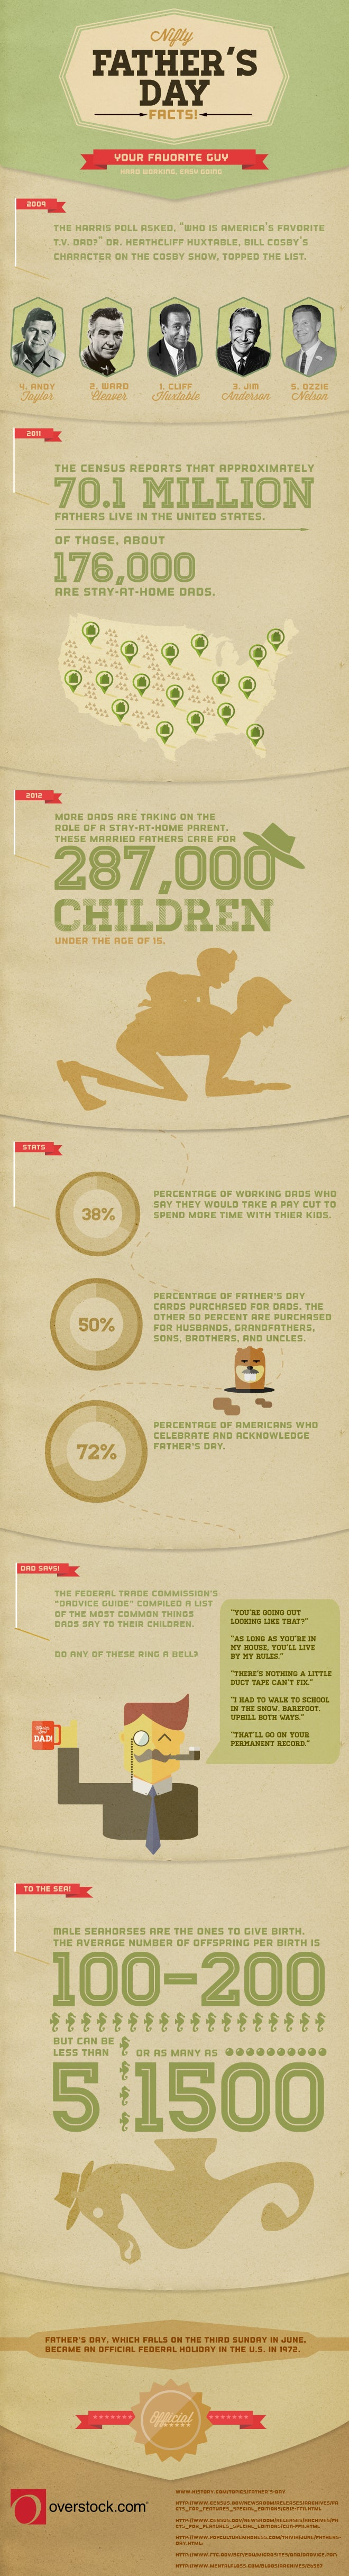 Father's Day Infographic from Overstock.com